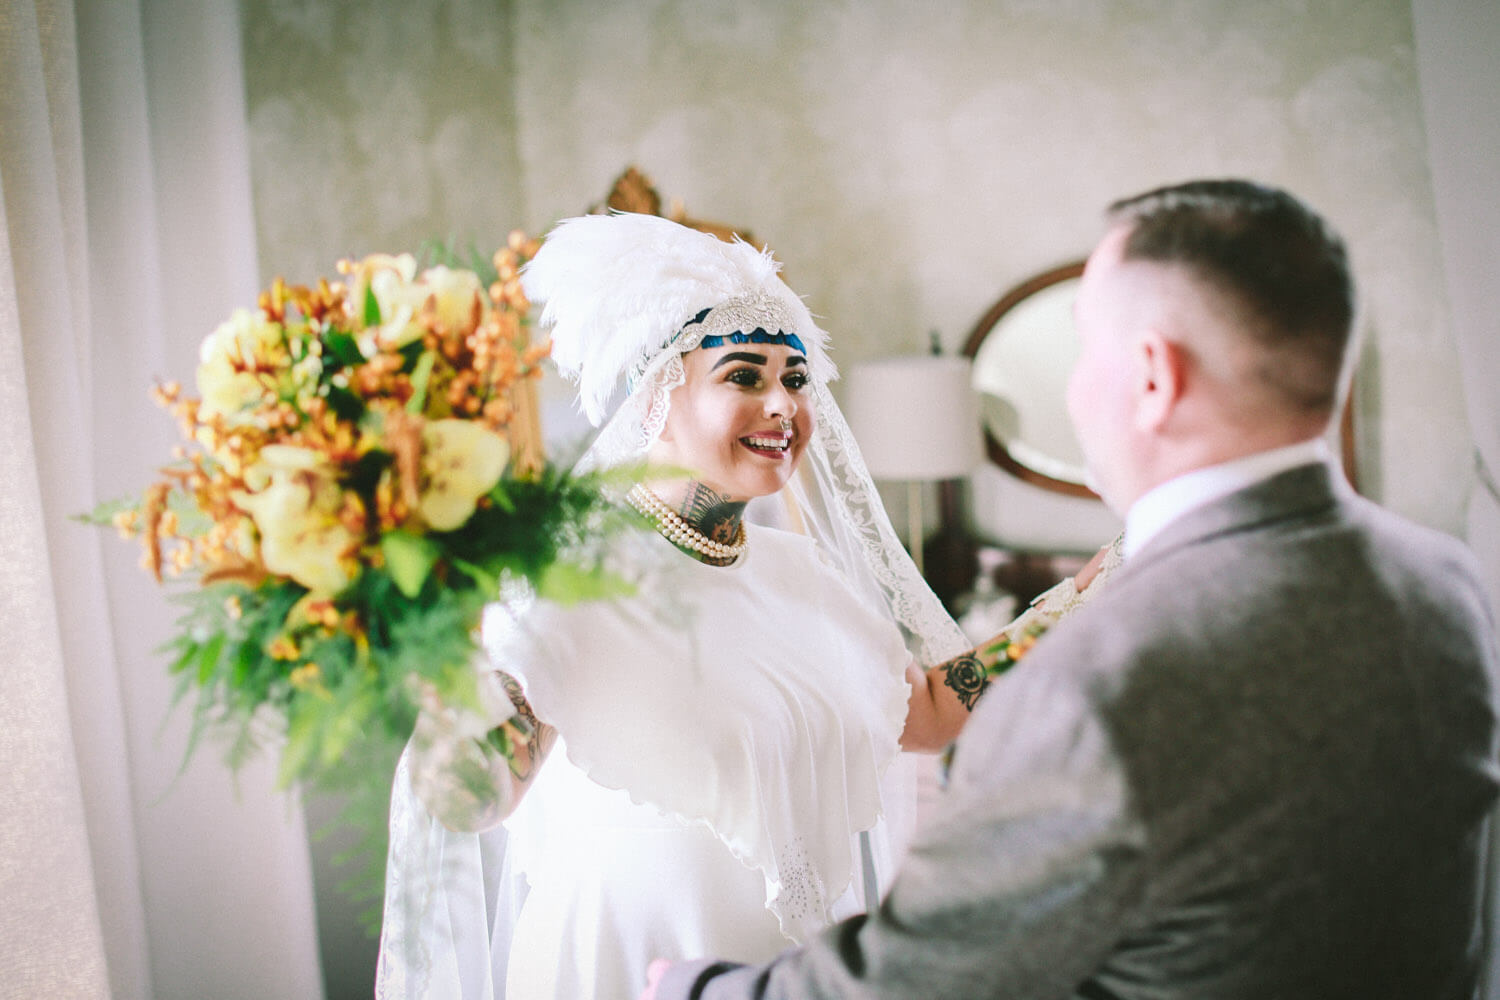 ASHFIELD HOUSE WEDDING PHOTOGRAPHER: VINTAGE WEDDING